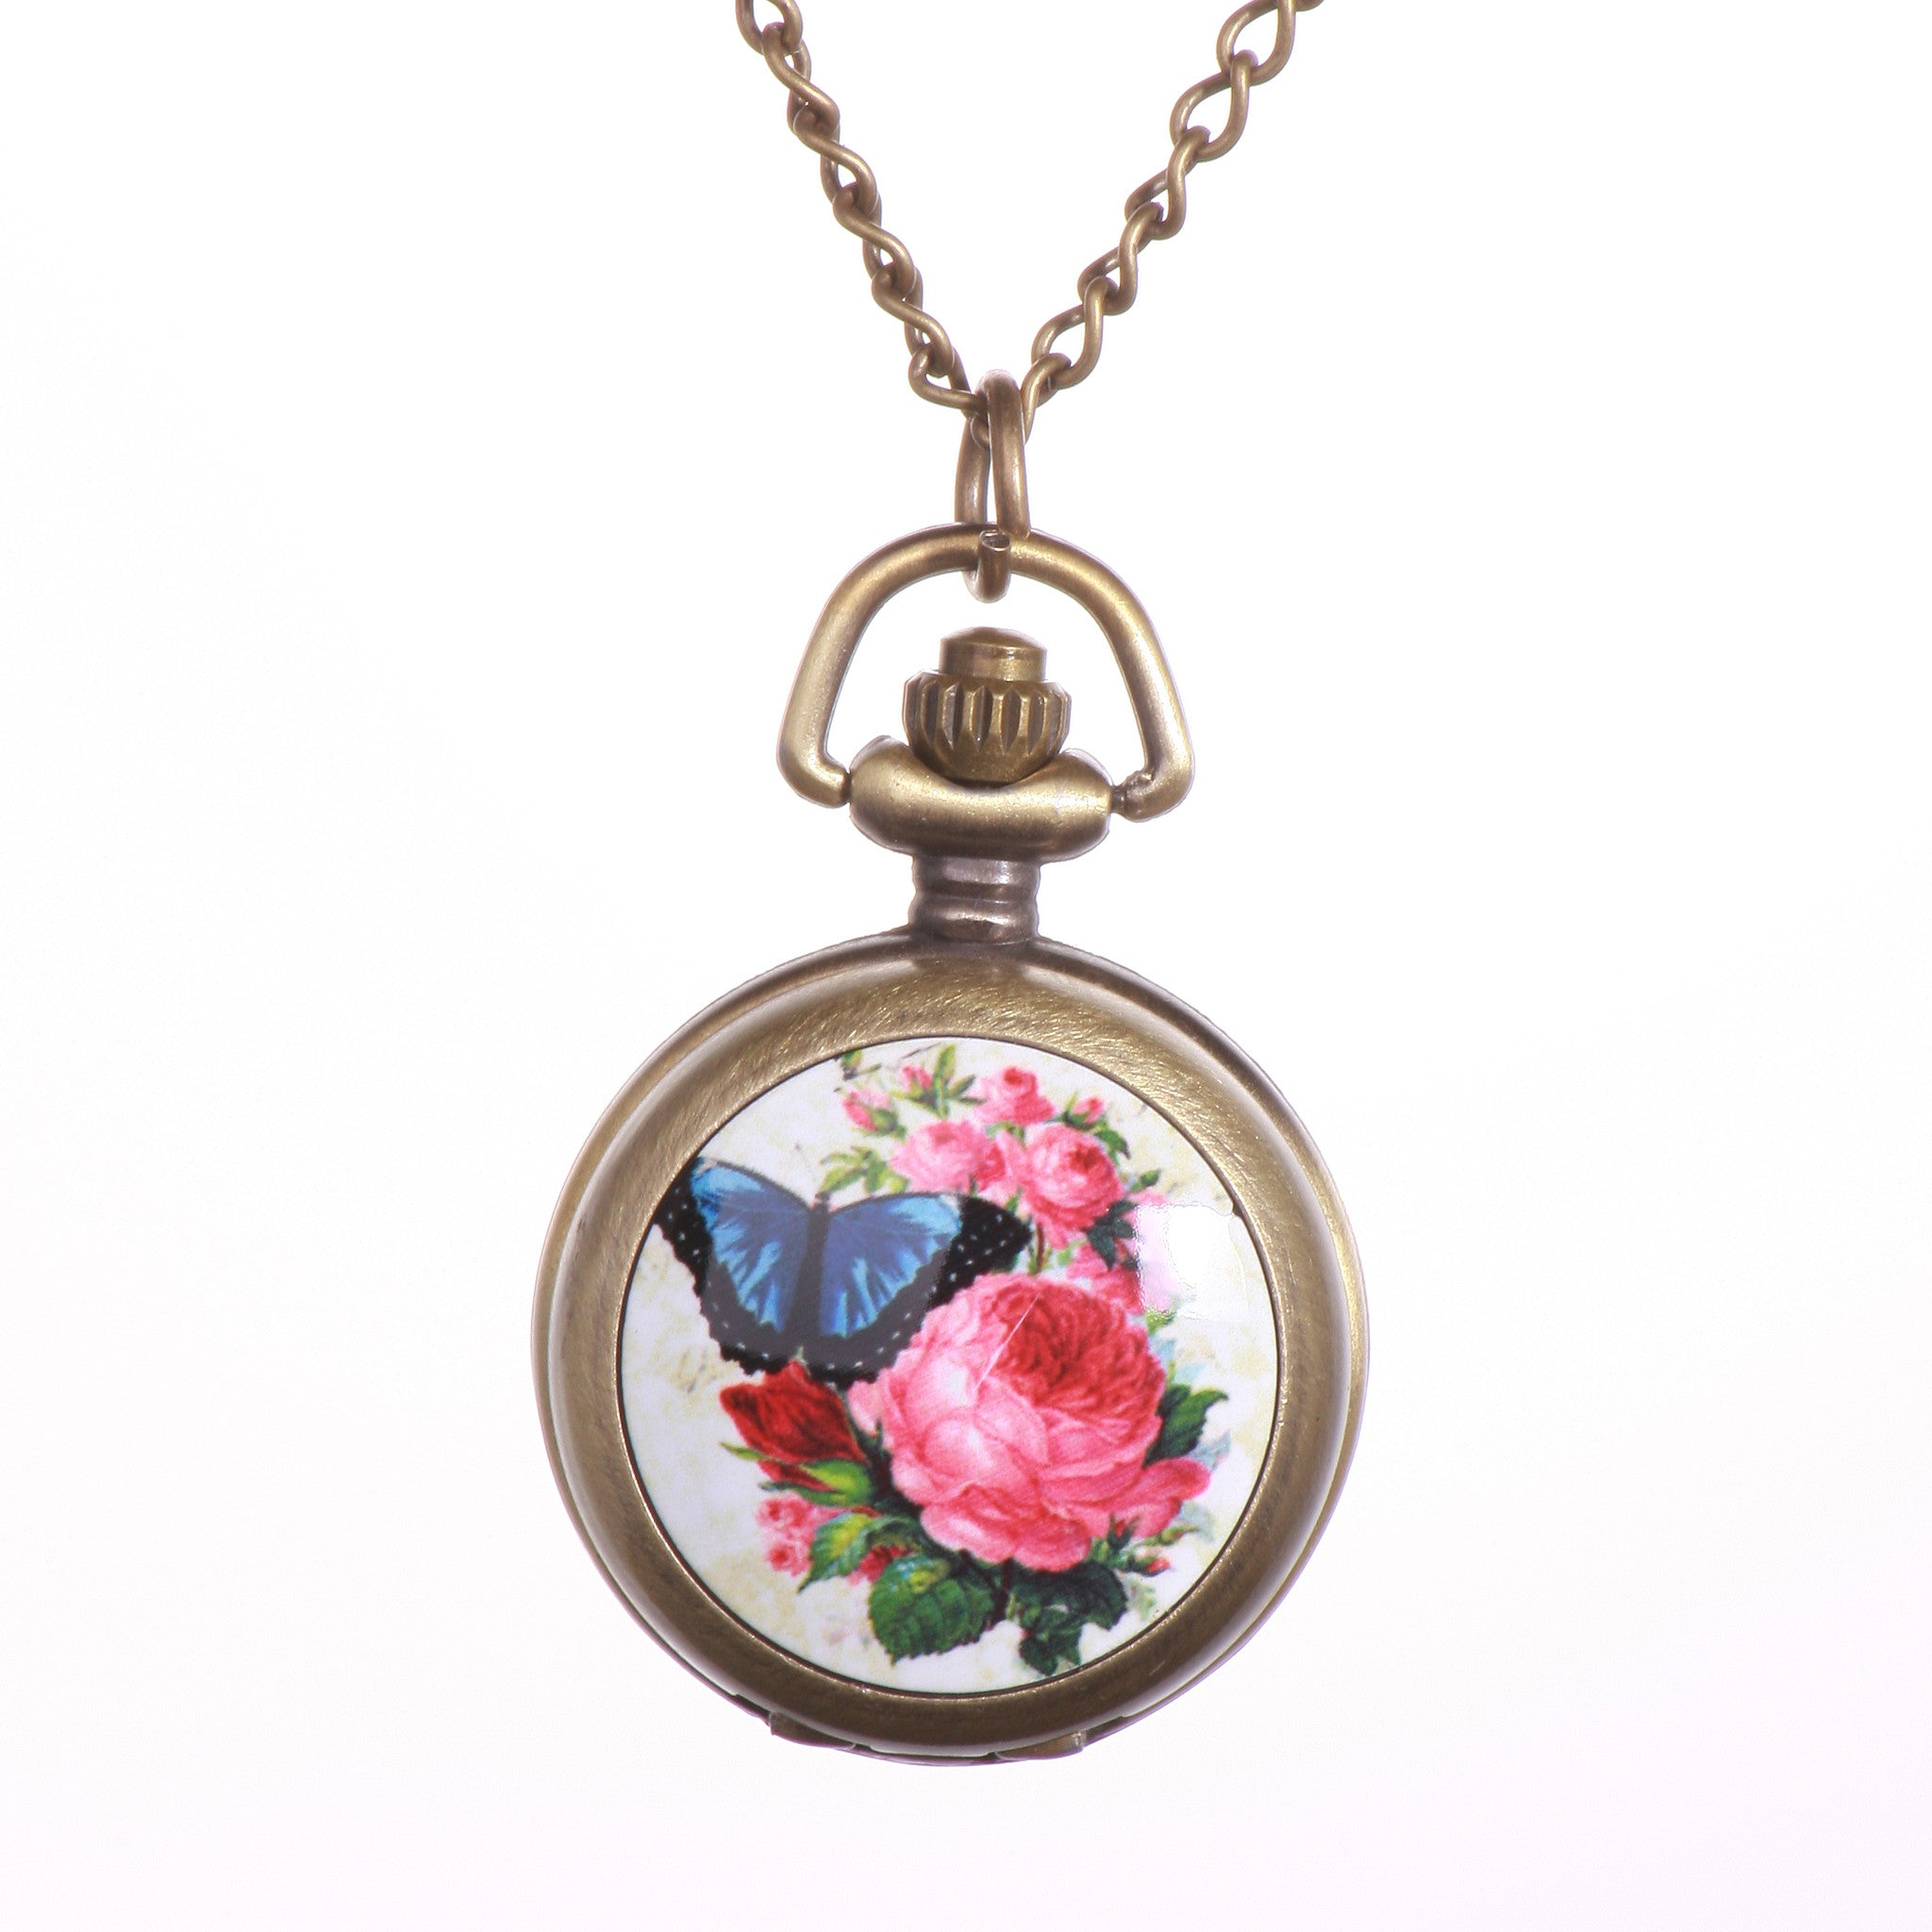 Butterfly Edition Beautiful Vintage Pocket Watch Necklace - One Cool Gift  - 1